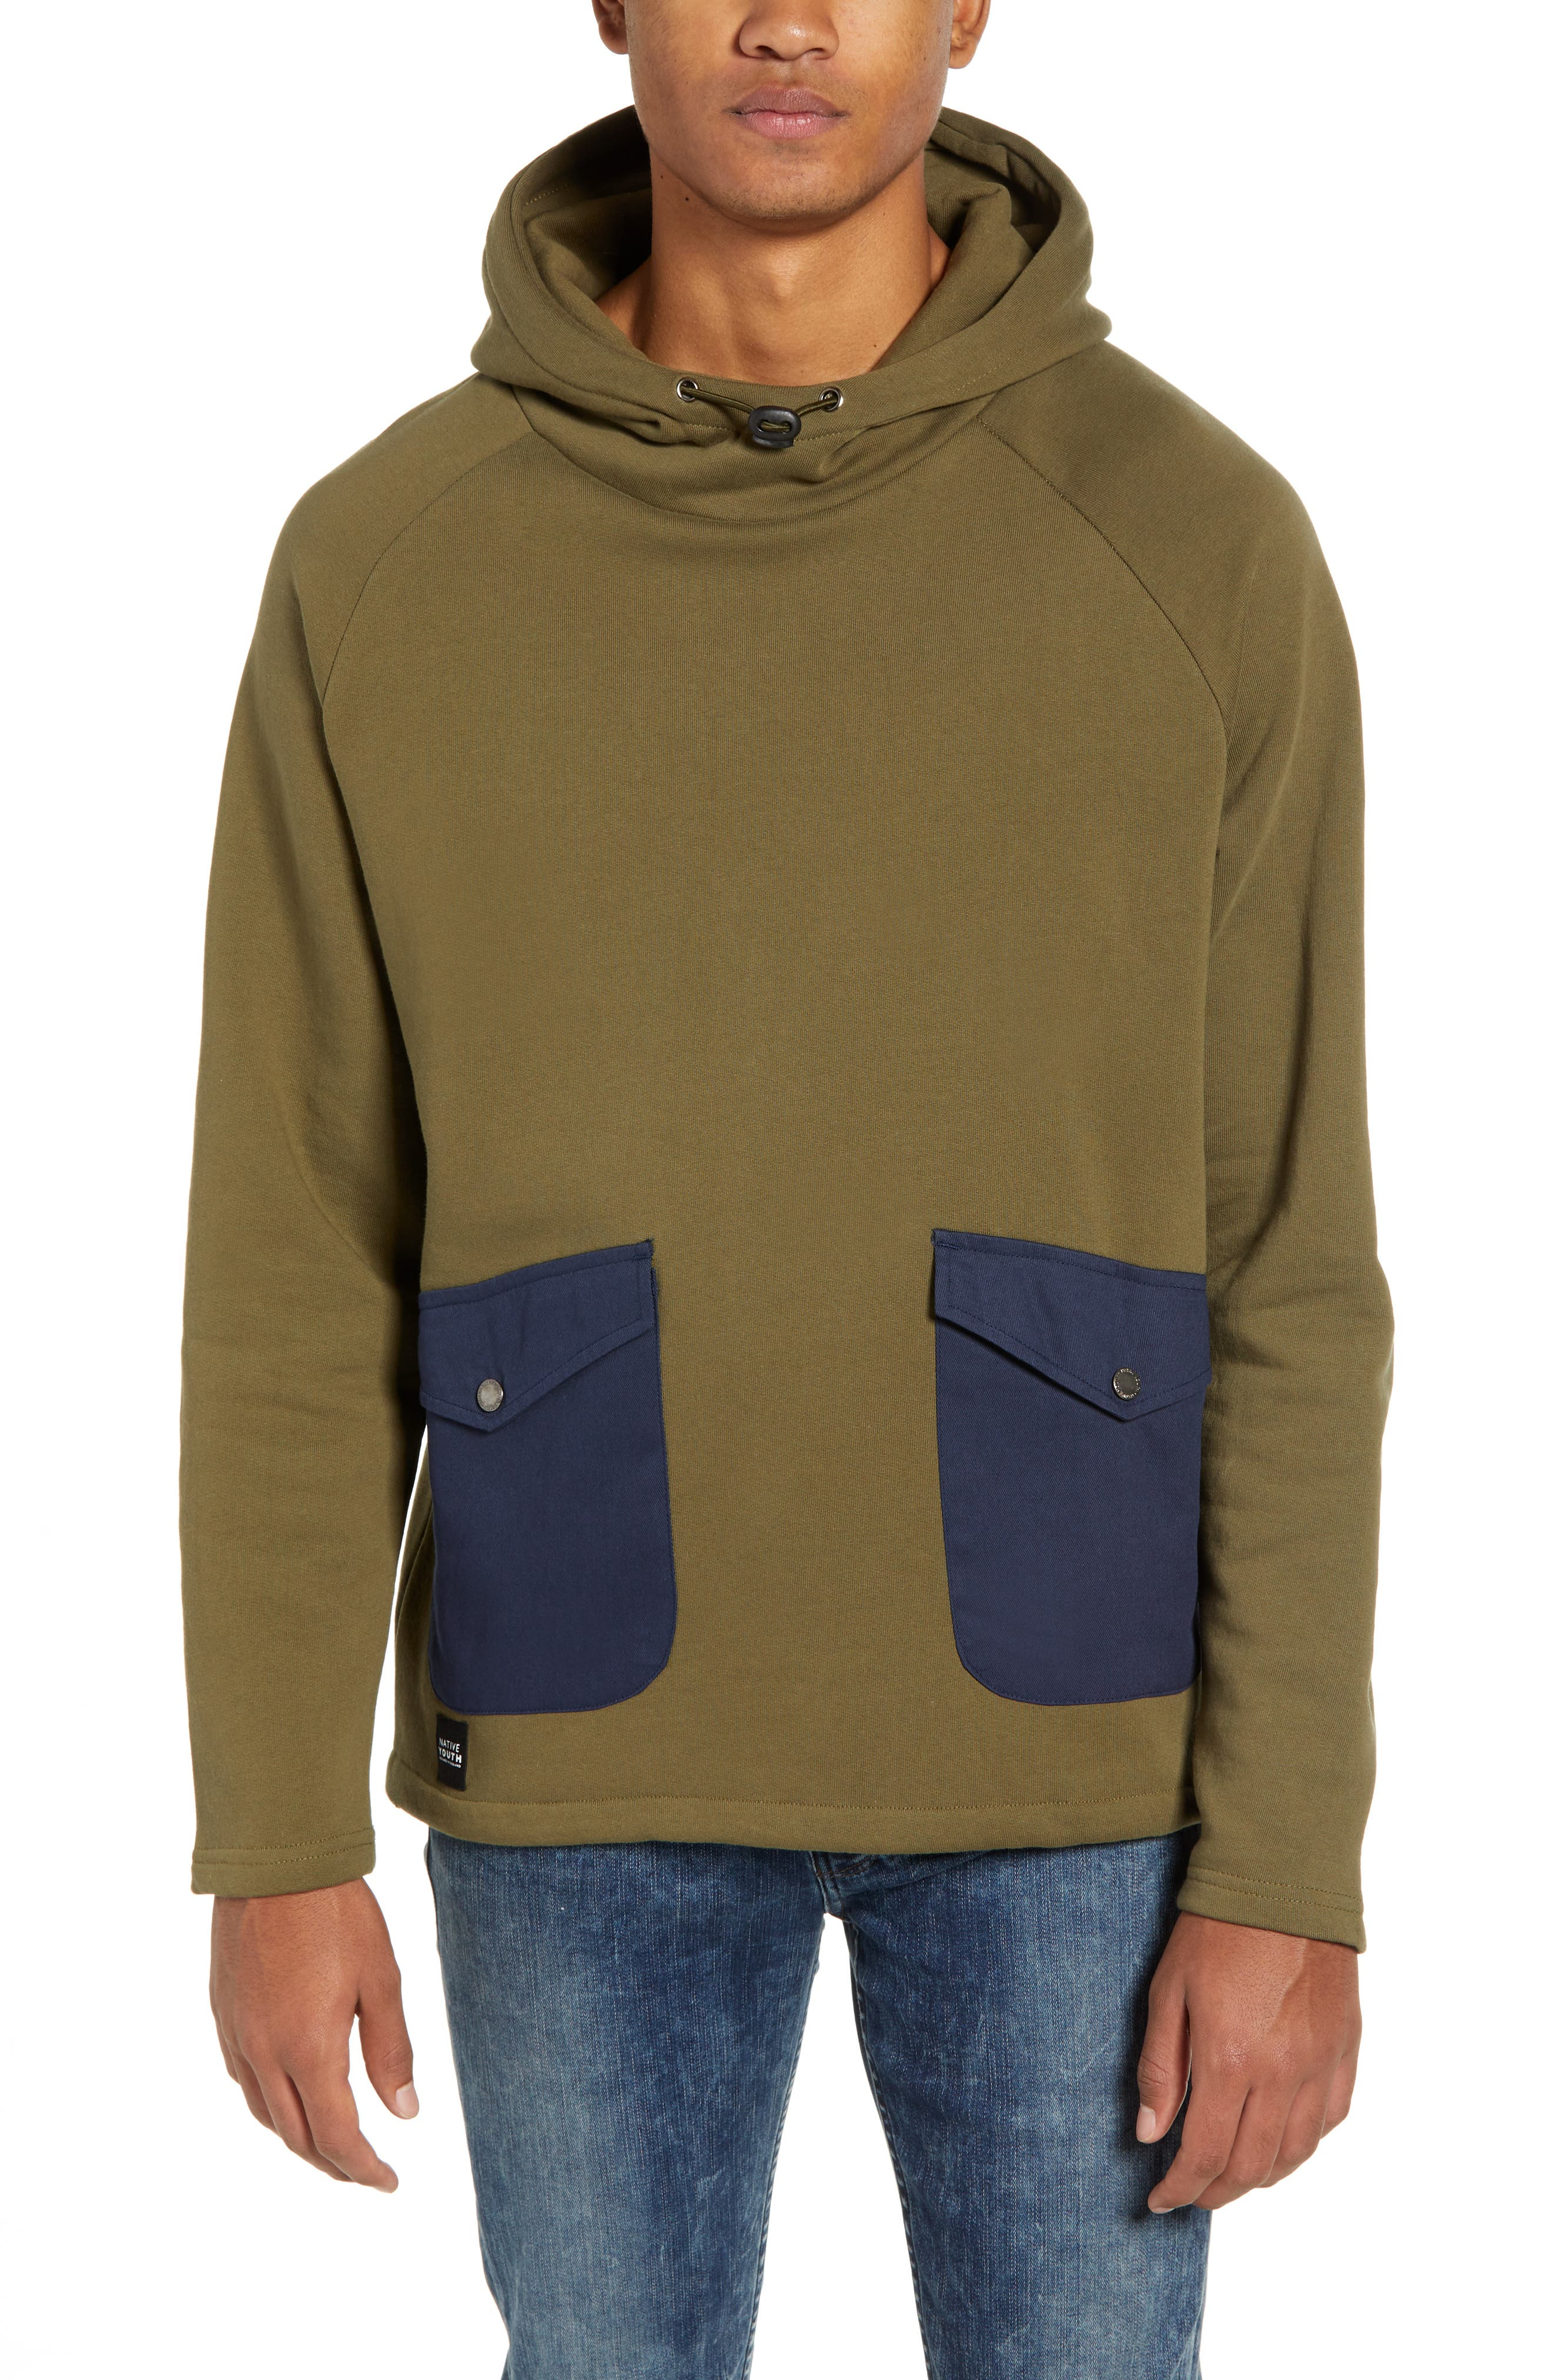 NATIVE YOUTH Patch Pocket Pullover Hoodie in Olive